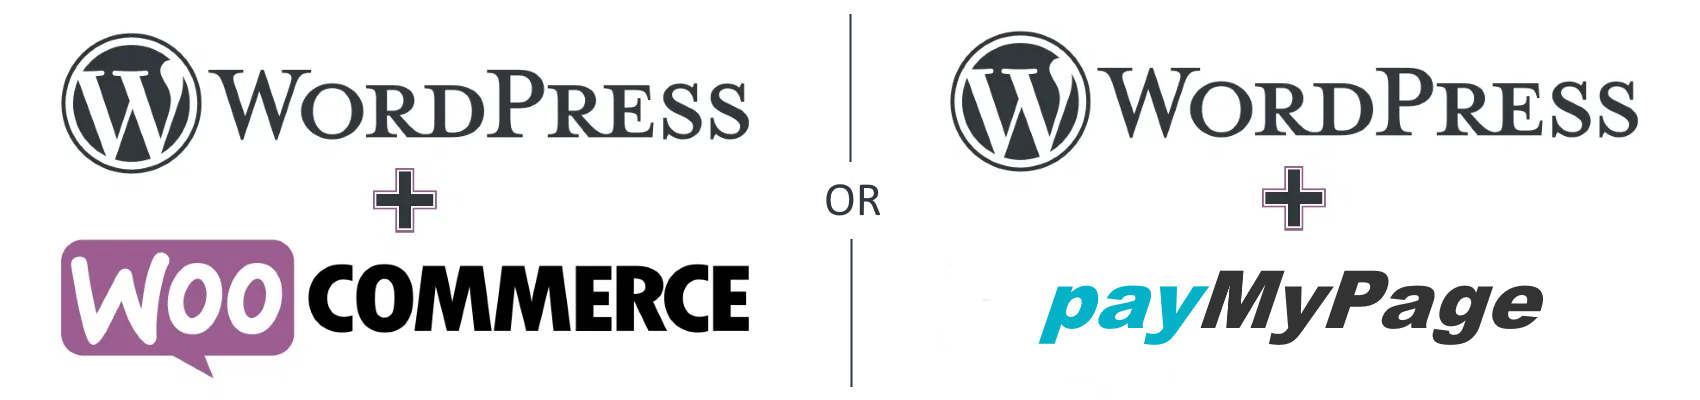 add online payments to wordpress woocommerce pmp